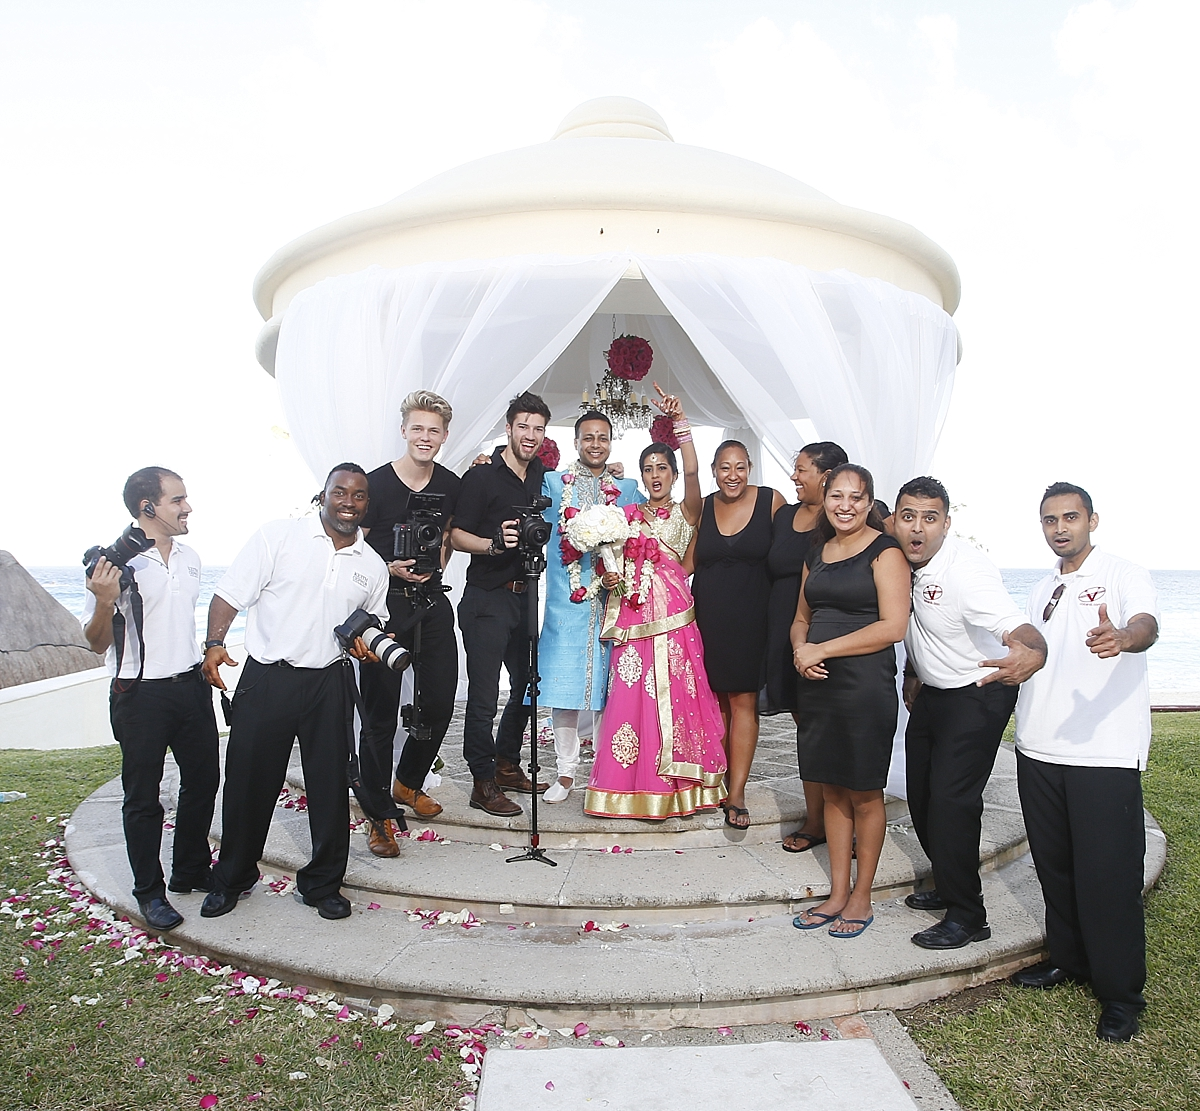 JW Marriott Cancun Destination Wedding Photographer | Indian Wedding Photographer | Amee and Neal's Amazing Destination Wedding!